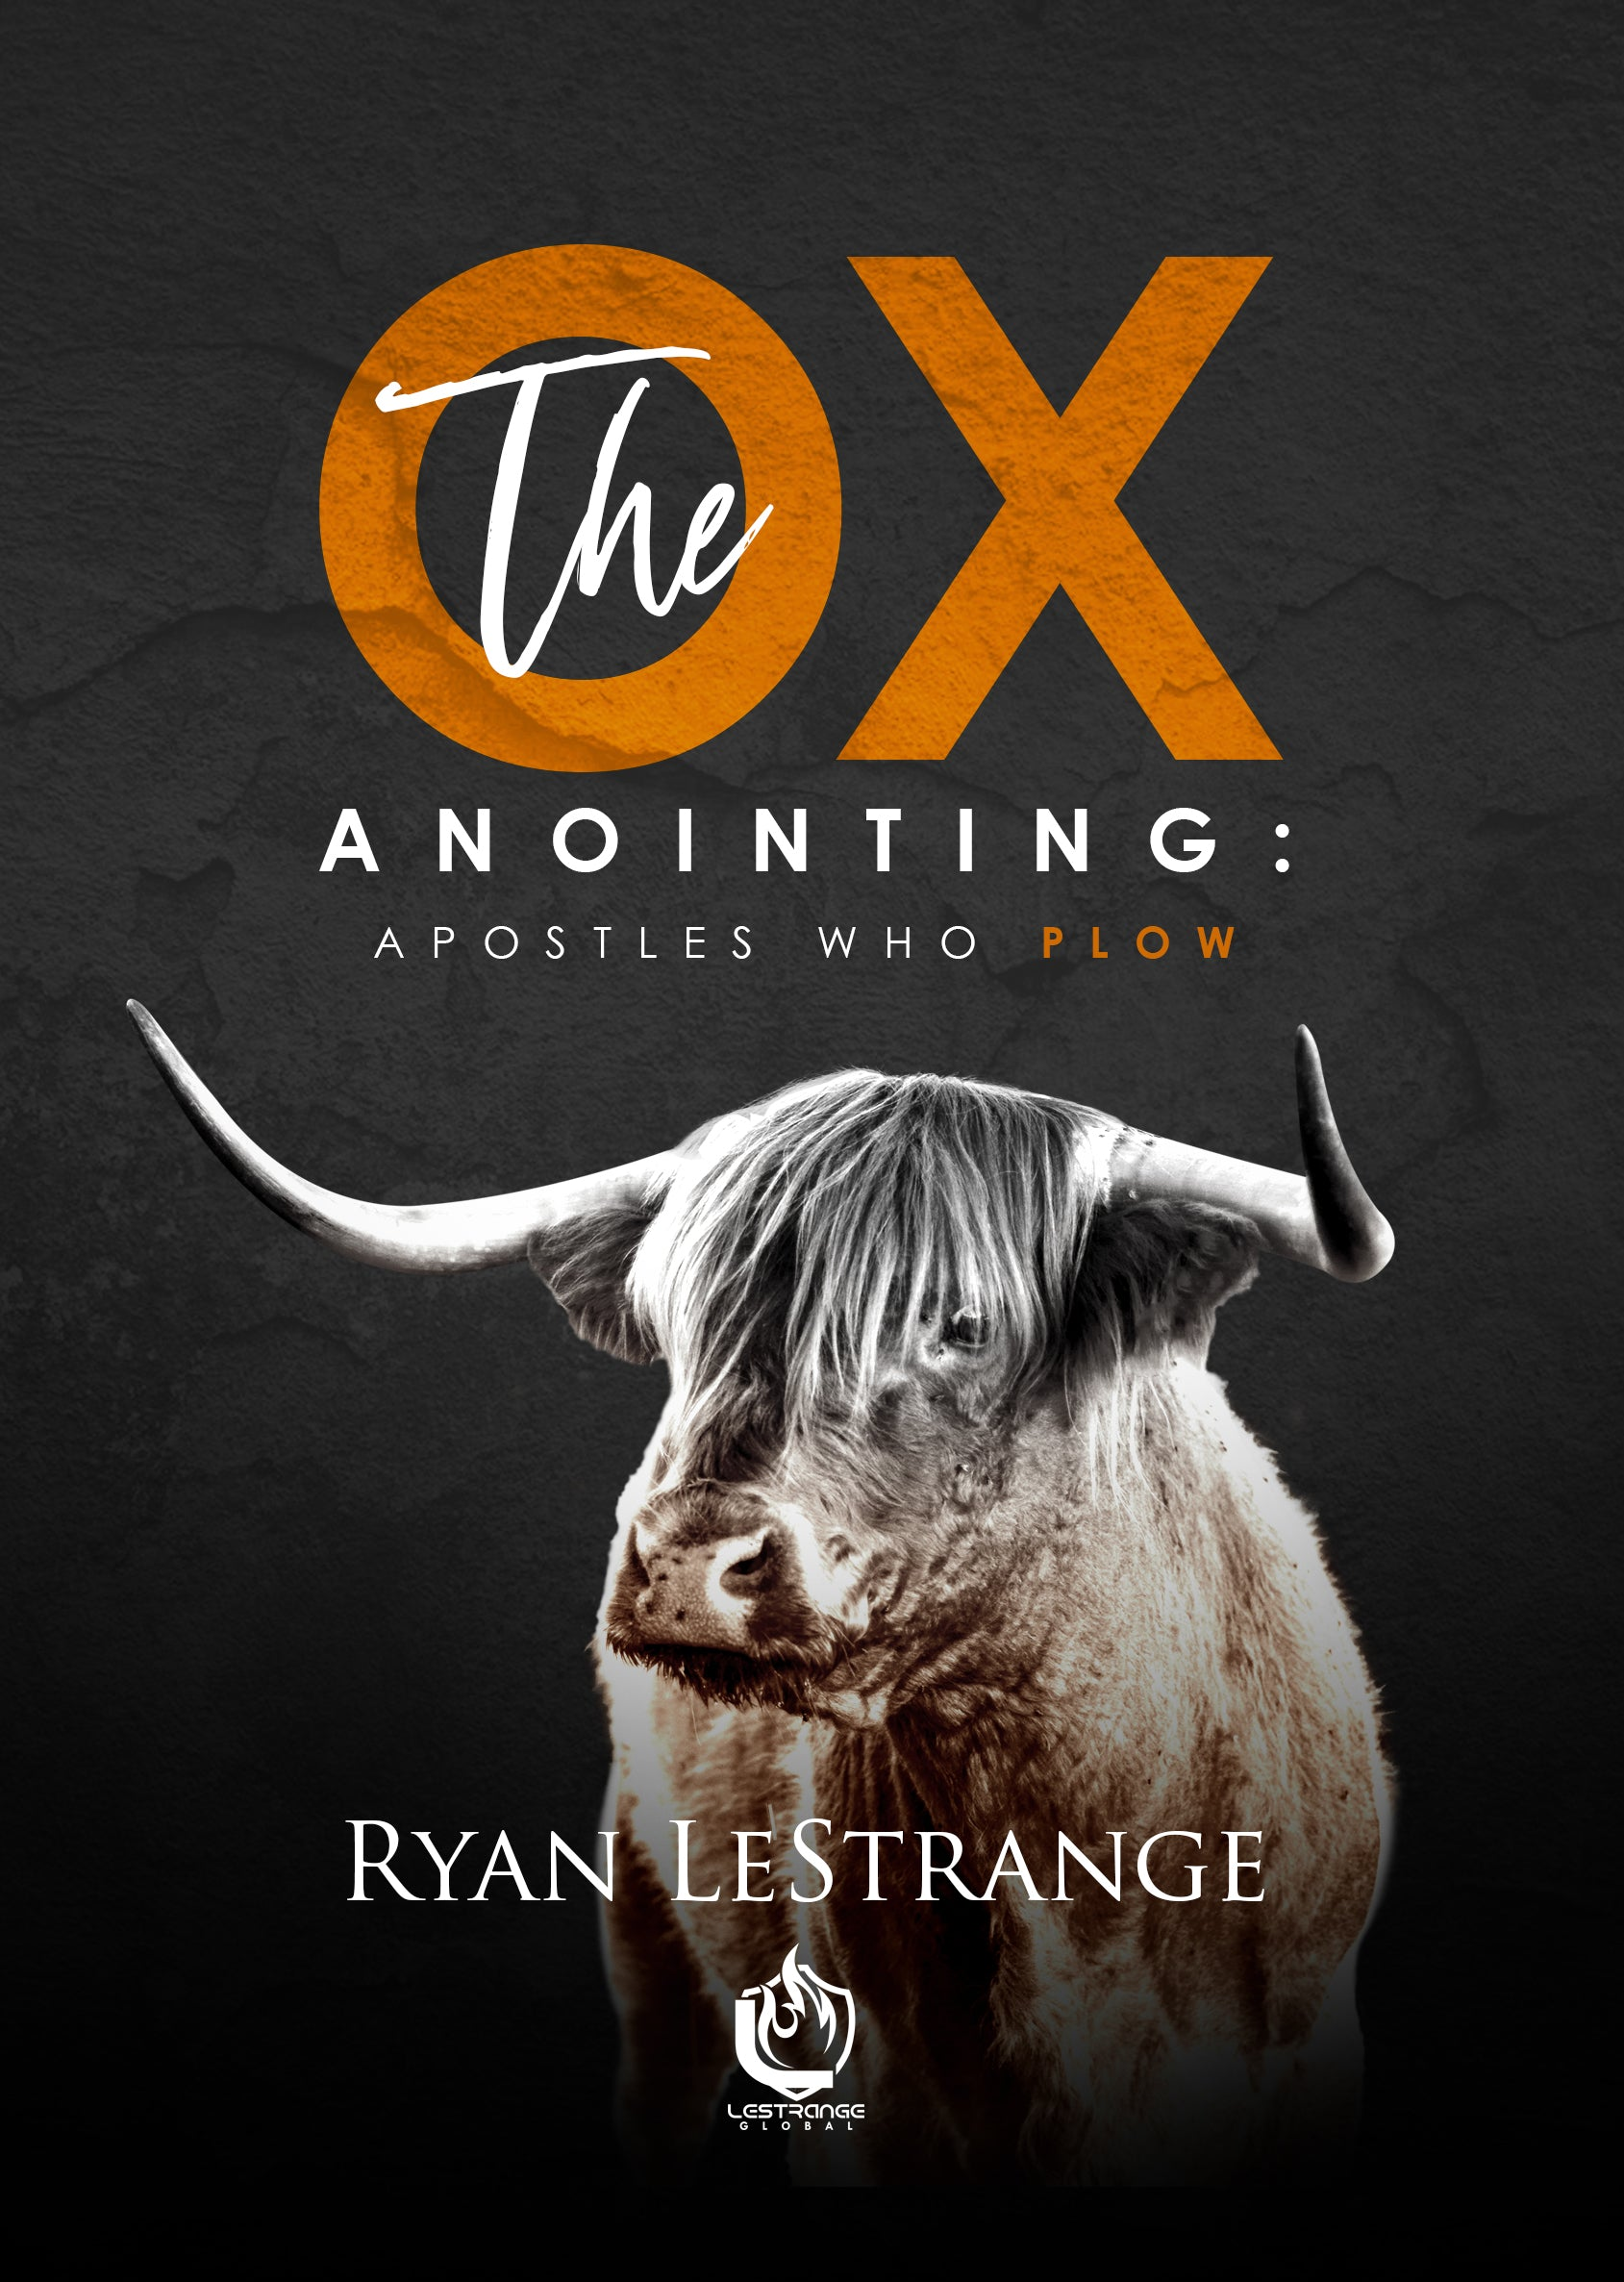 The Ox Anointing E-book